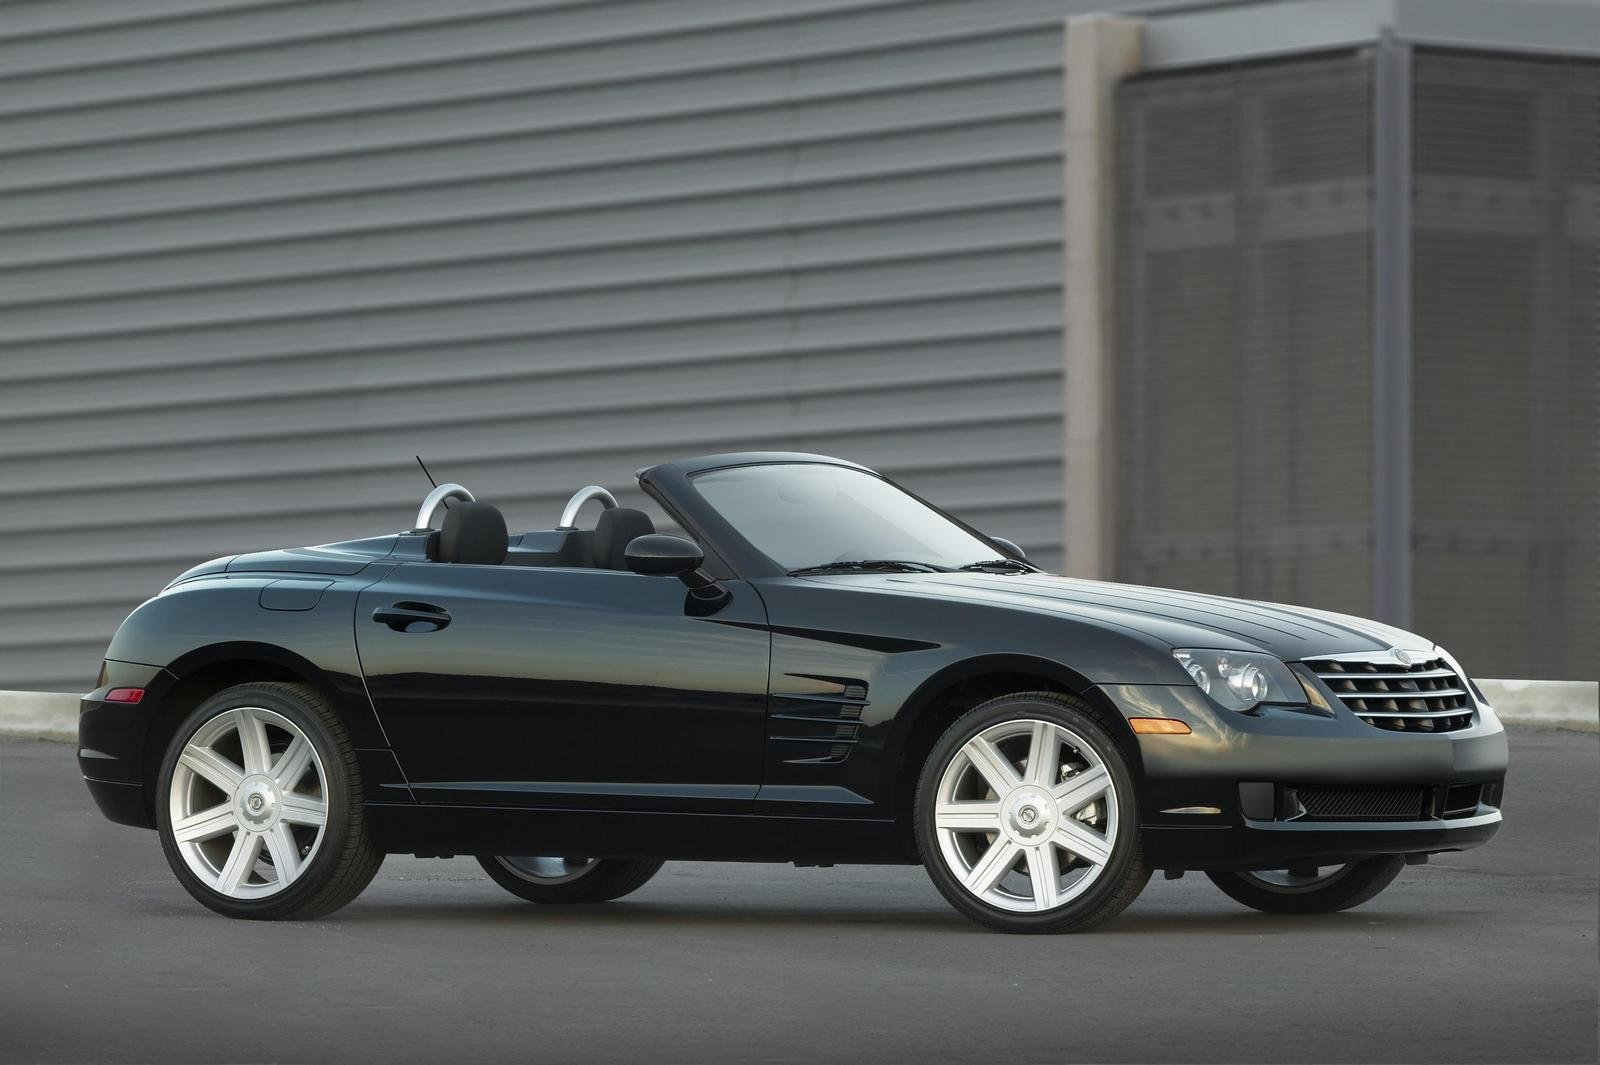 2007 chrysler crossfire picture 100195 car review top speed. Cars Review. Best American Auto & Cars Review